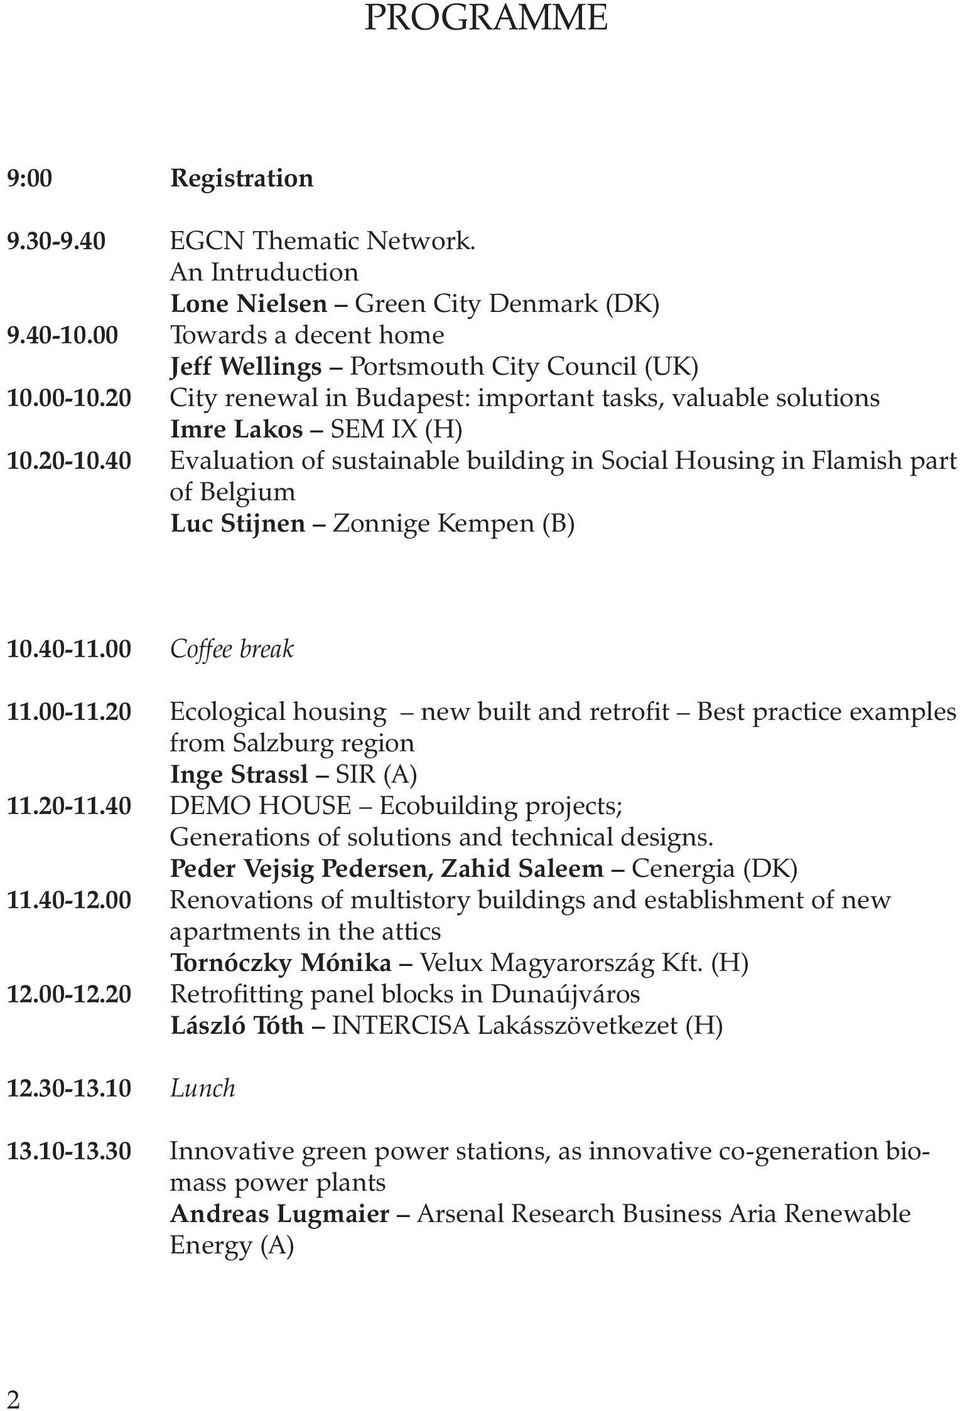 40 Evaluation of sustainable building in Social Housing in Flamish part of Belgium Luc Stijnen Zonnige Kempen (B) 10.40-11.00 Coffee break 11.00-11.